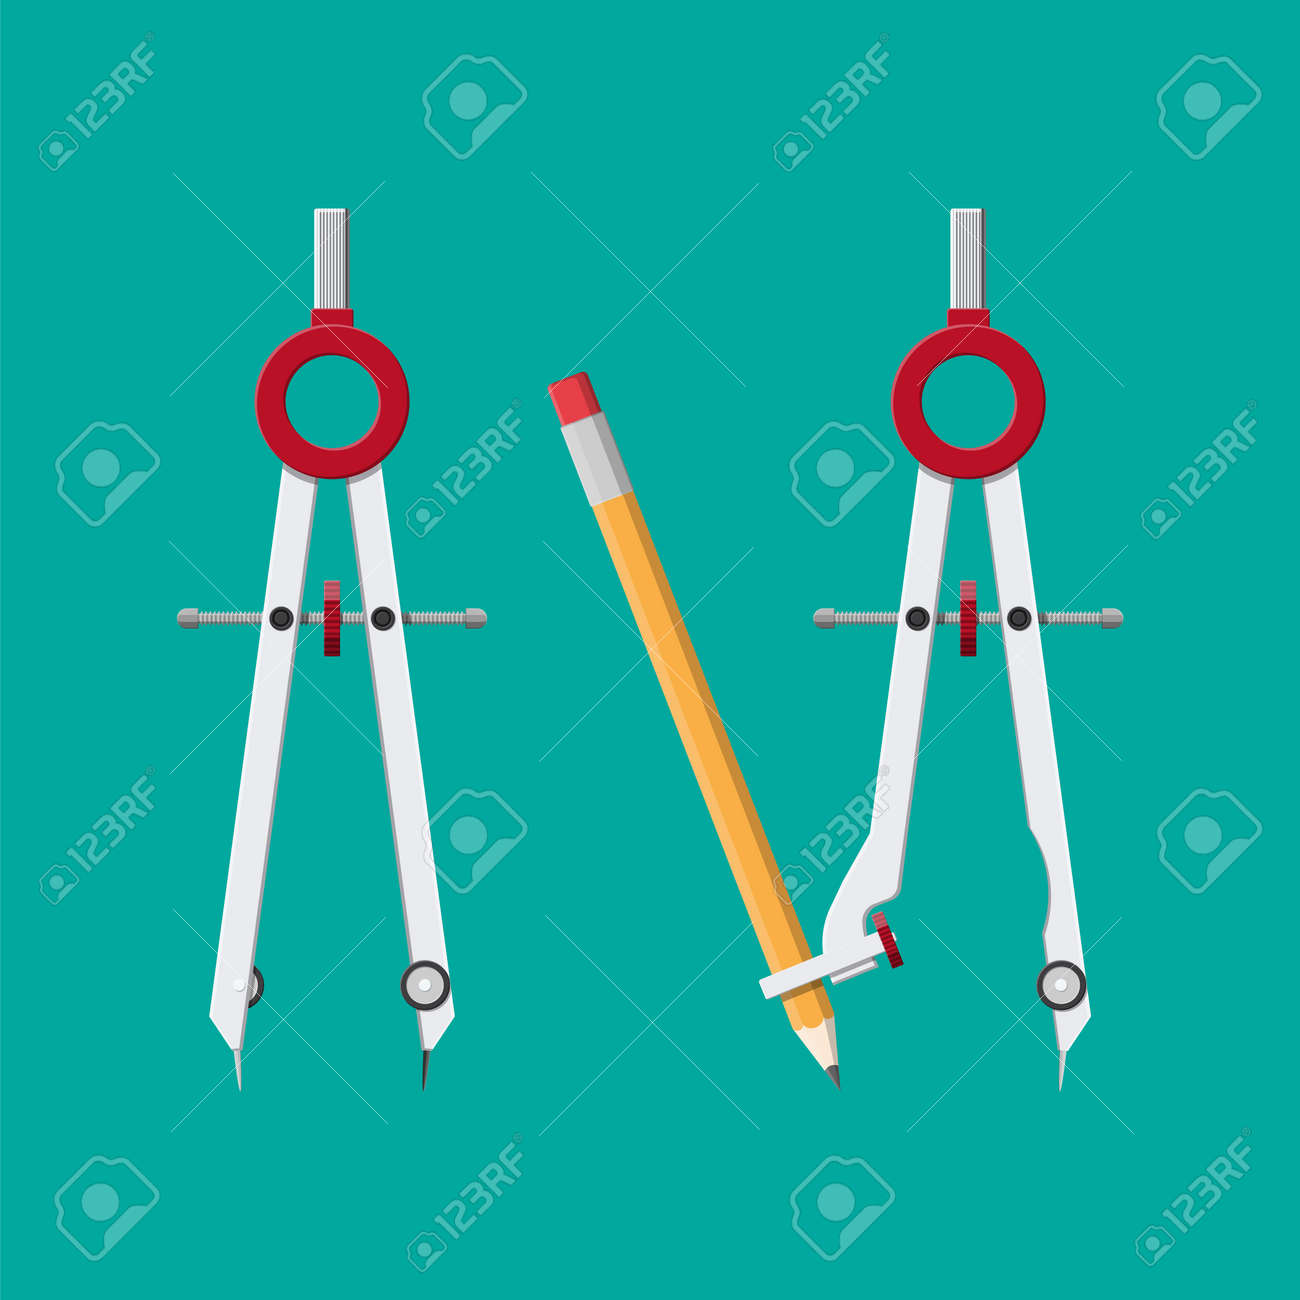 divider caliper with attached pencil for office supply school stationery